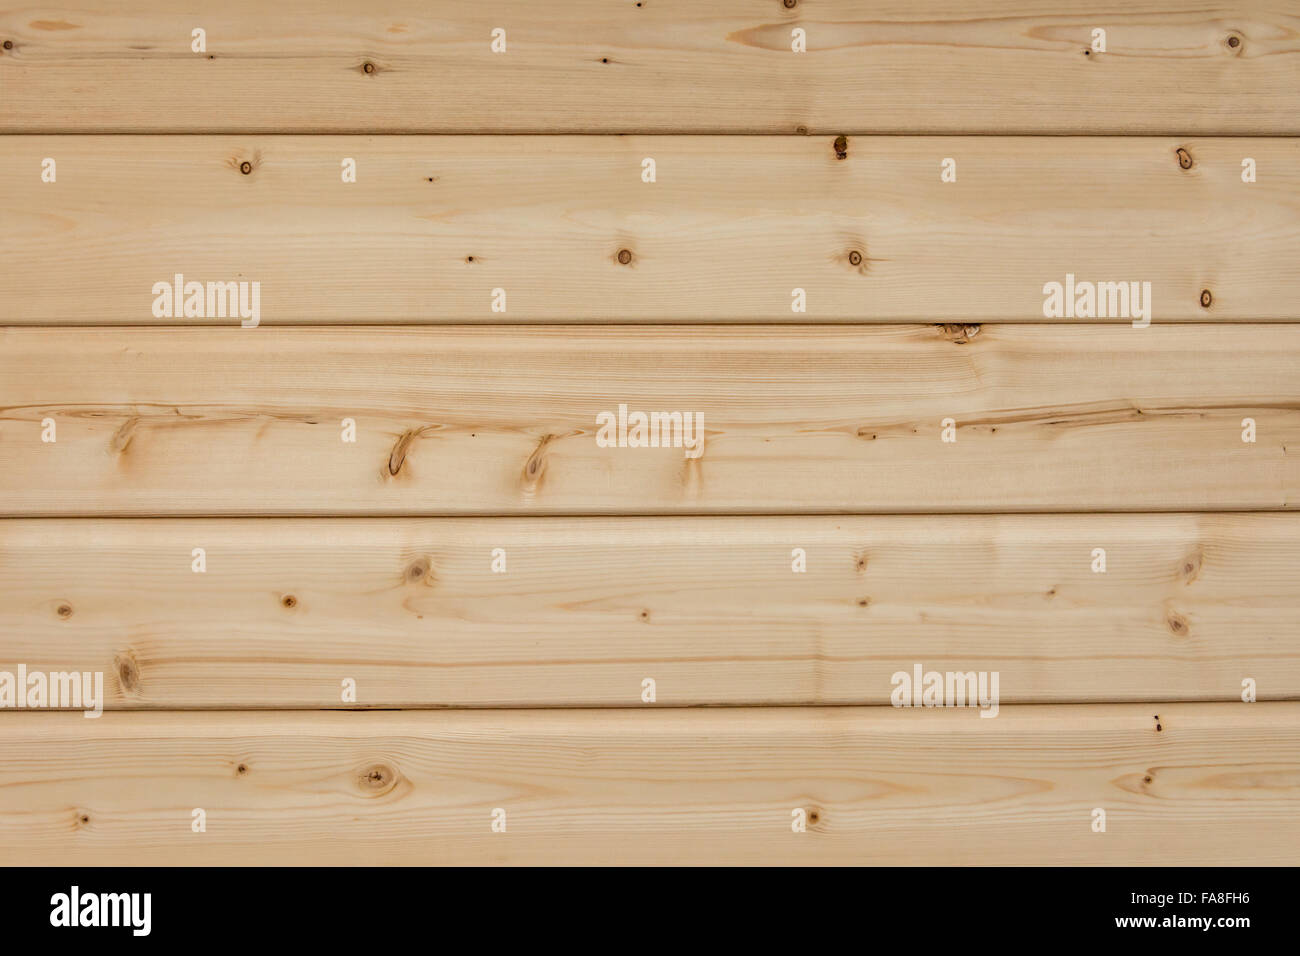 Texture, background, pattern or wallpaper of bright horizontal wood planks - Stock Image